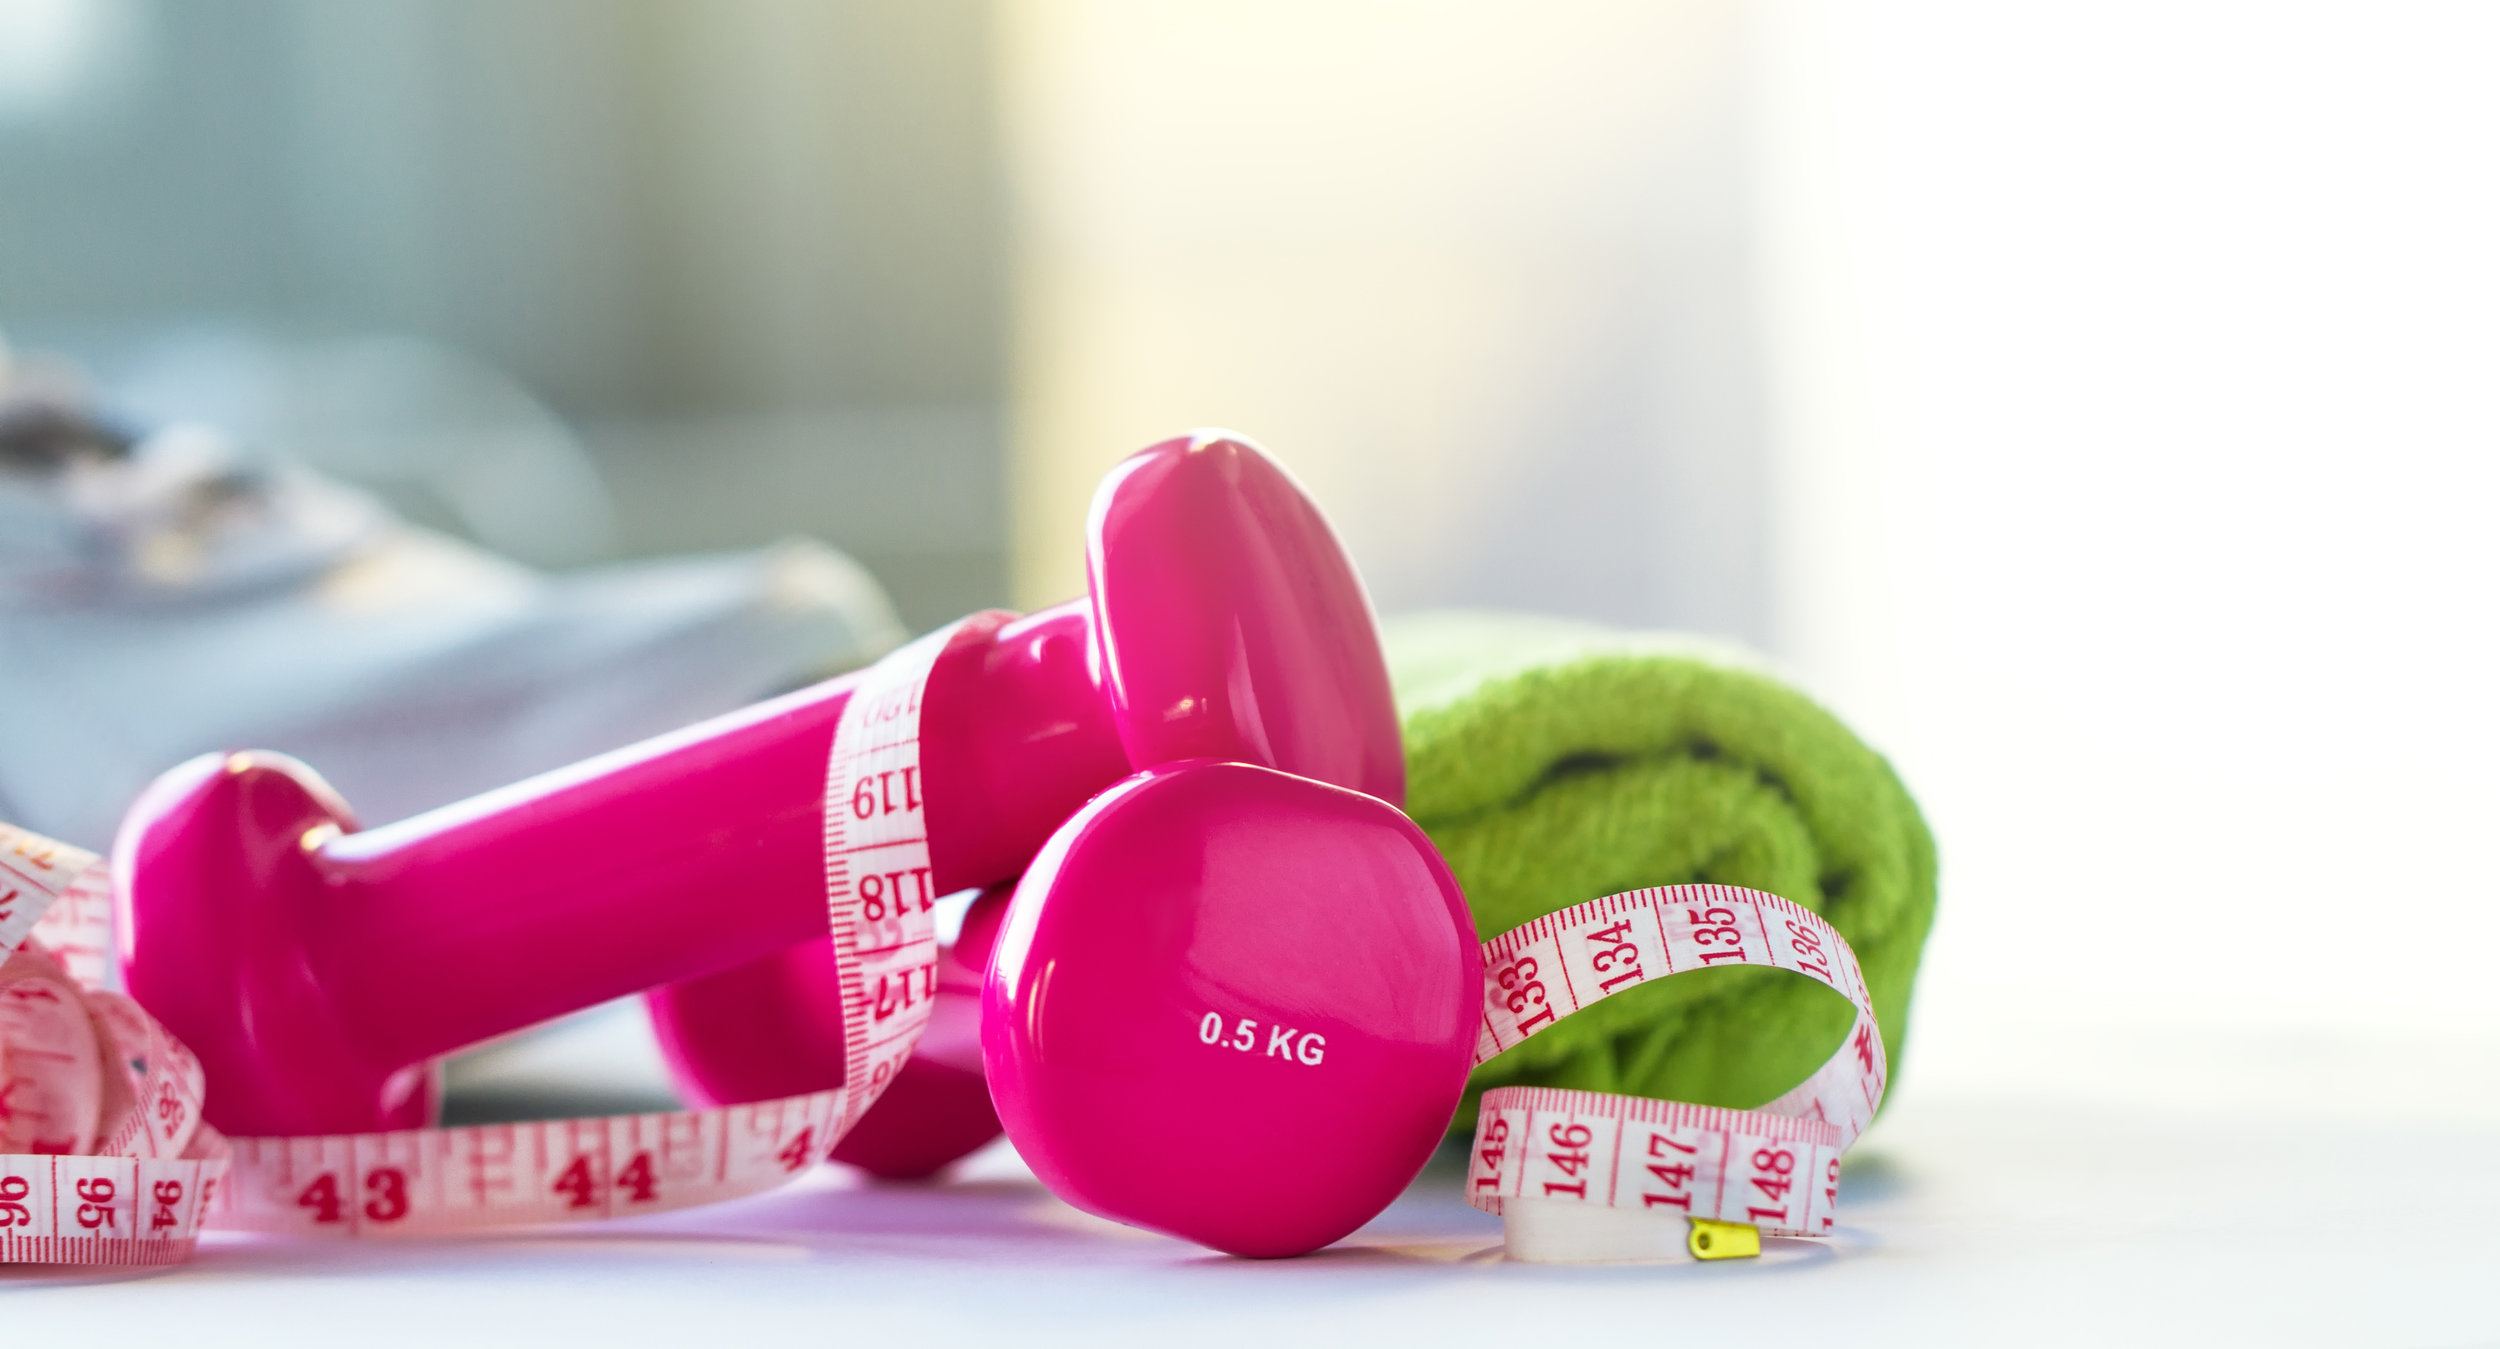 Pair of pink fitness dumbbells with centimeter ribbon on bright